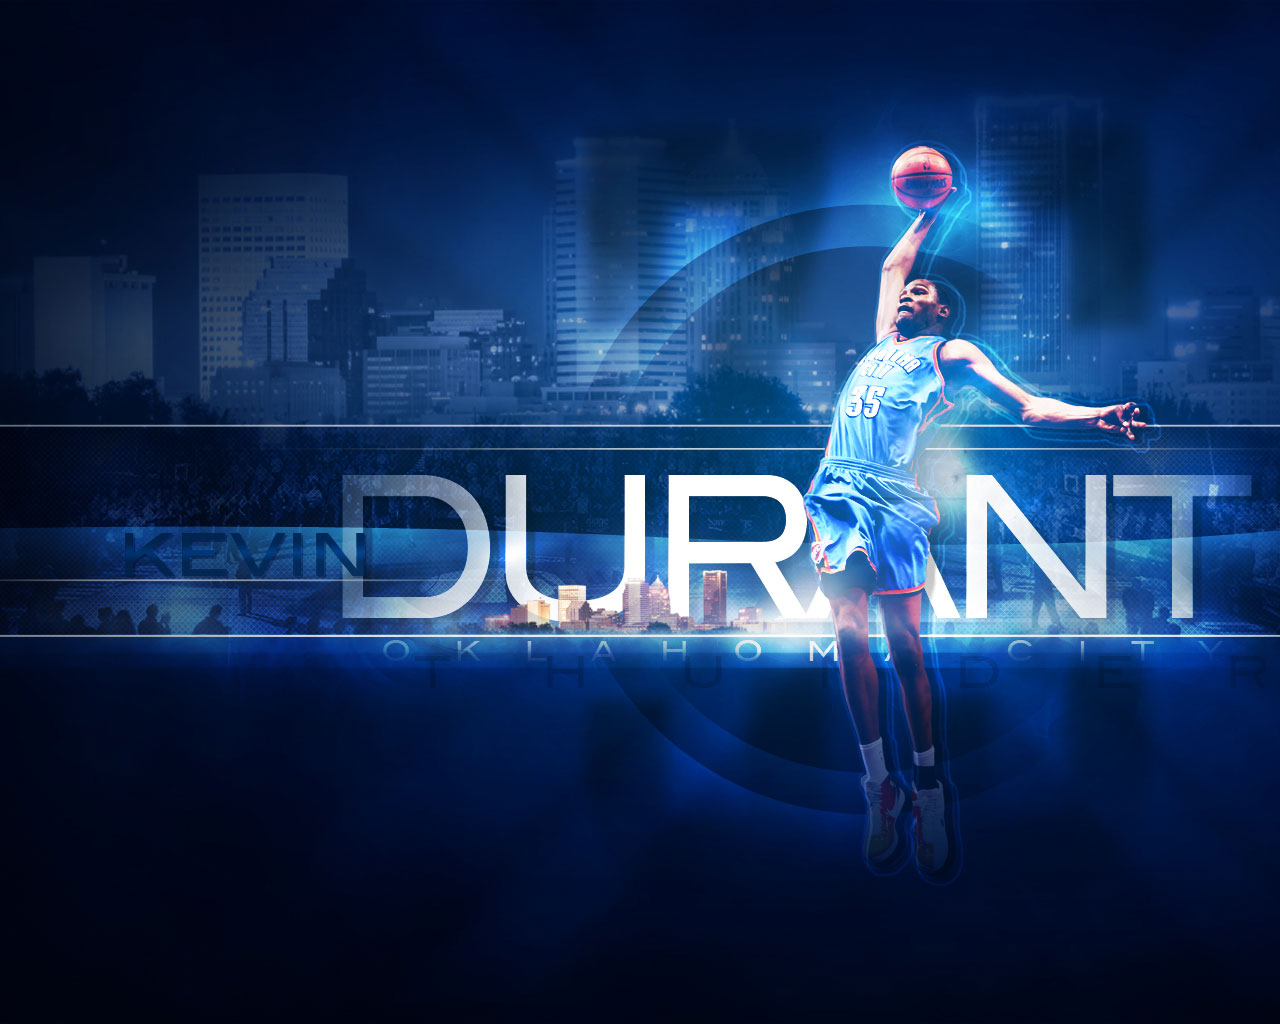 kevin durant new hd wallpapers 2012 its all about basketball